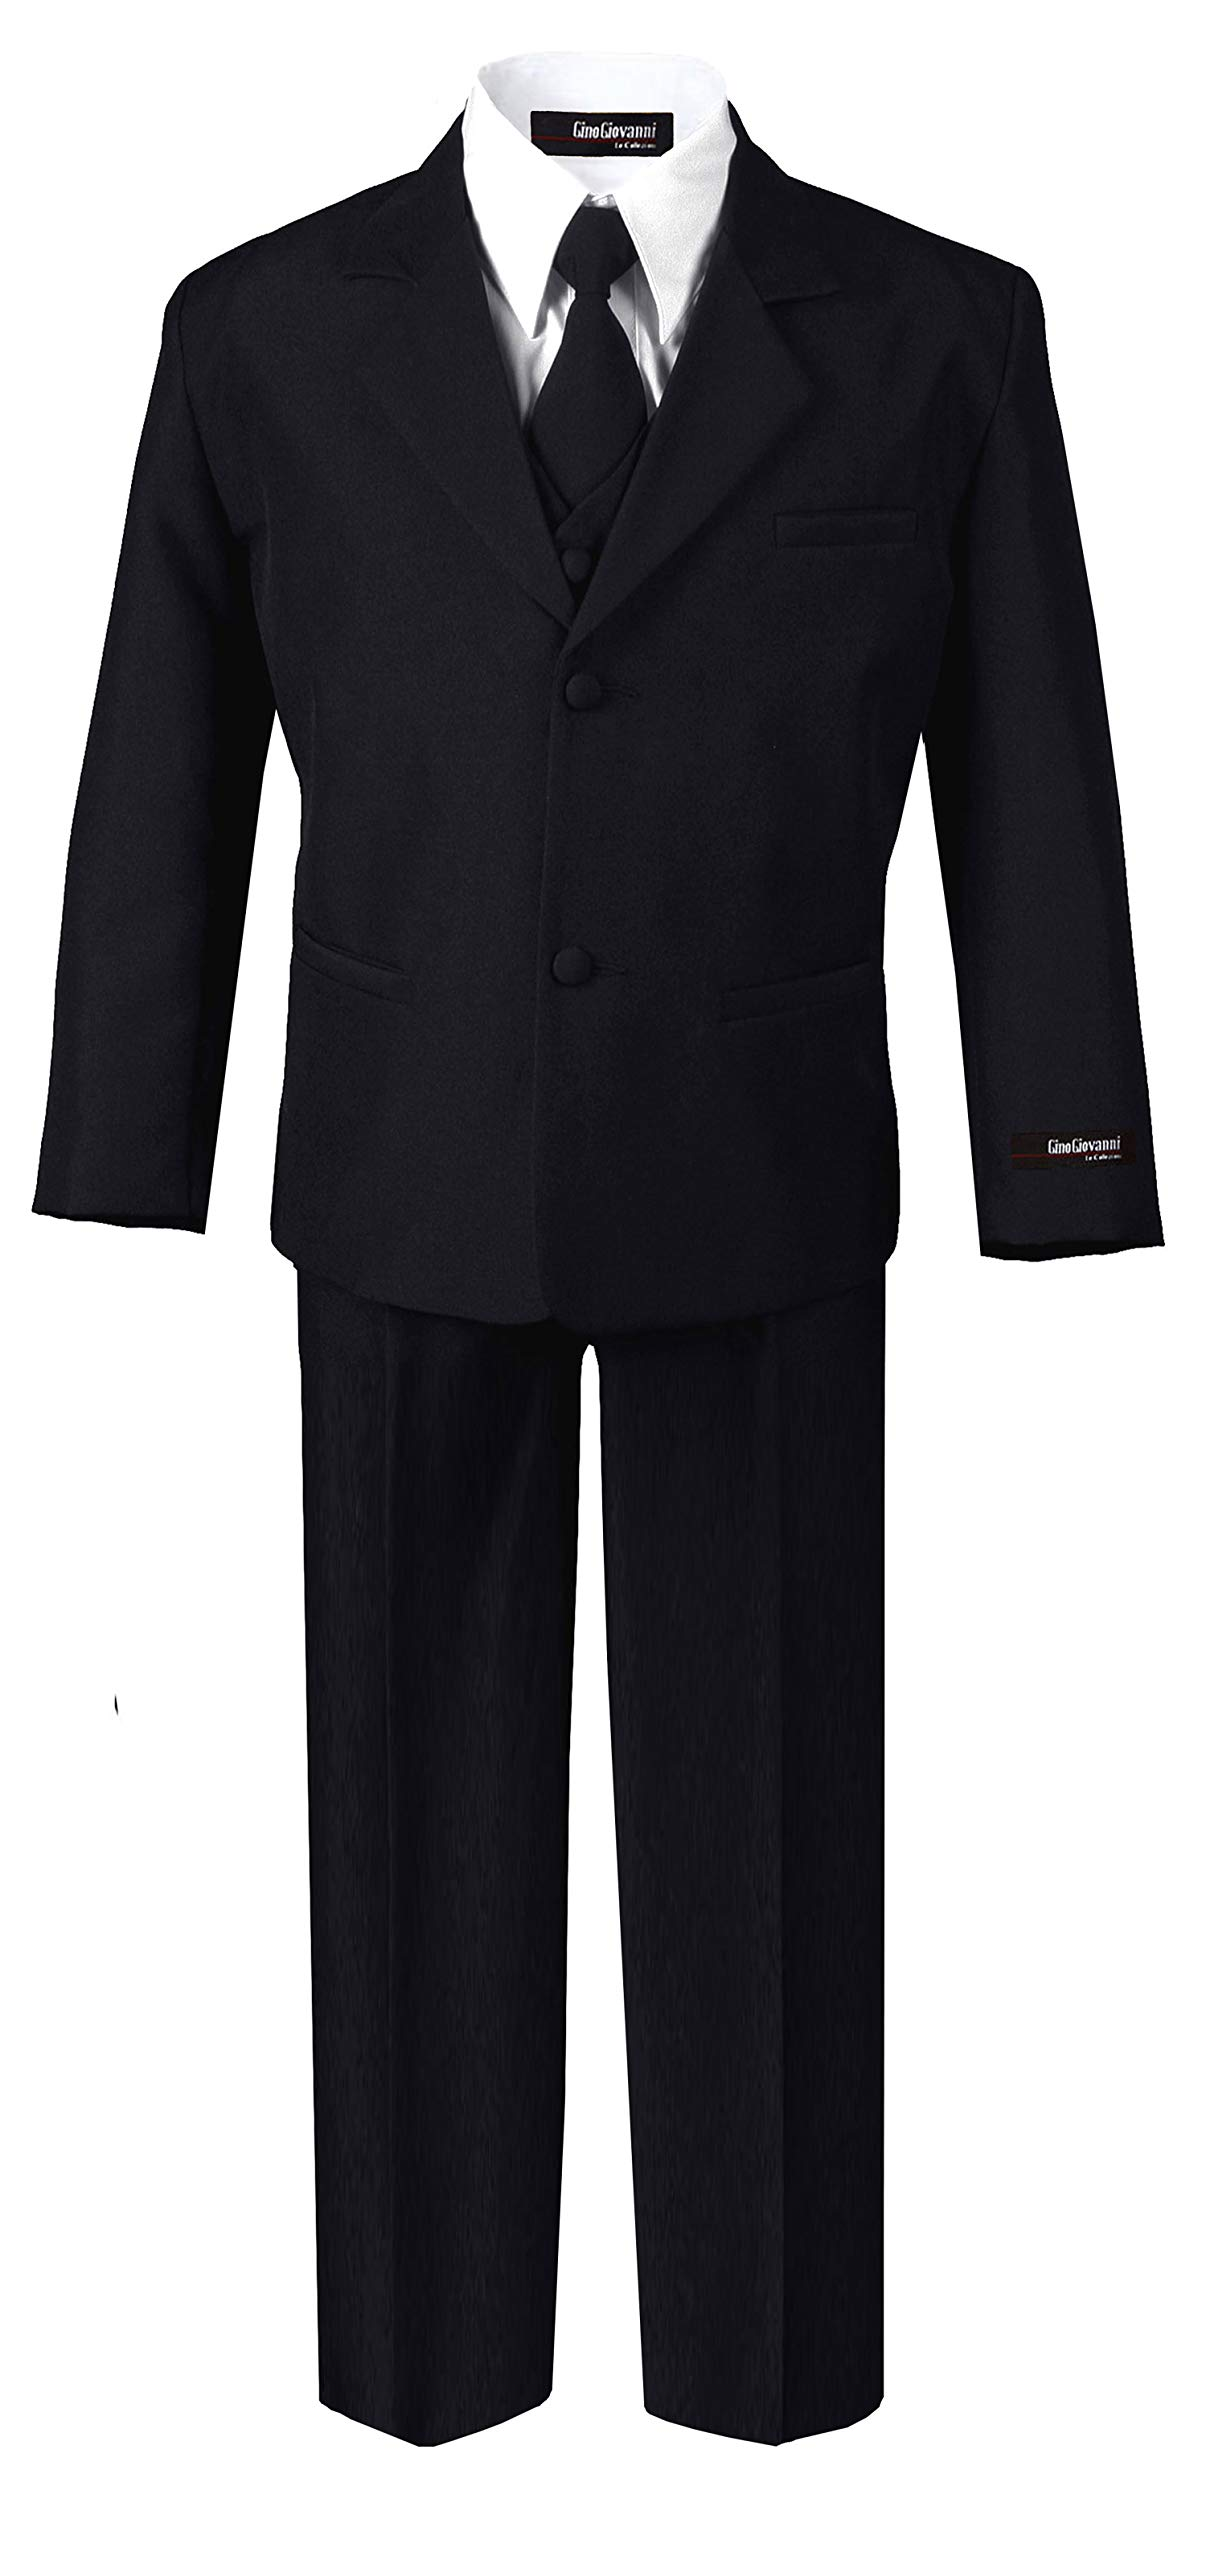 US Fairytailes Formal Boy Black Suit From Baby to Teen (10)